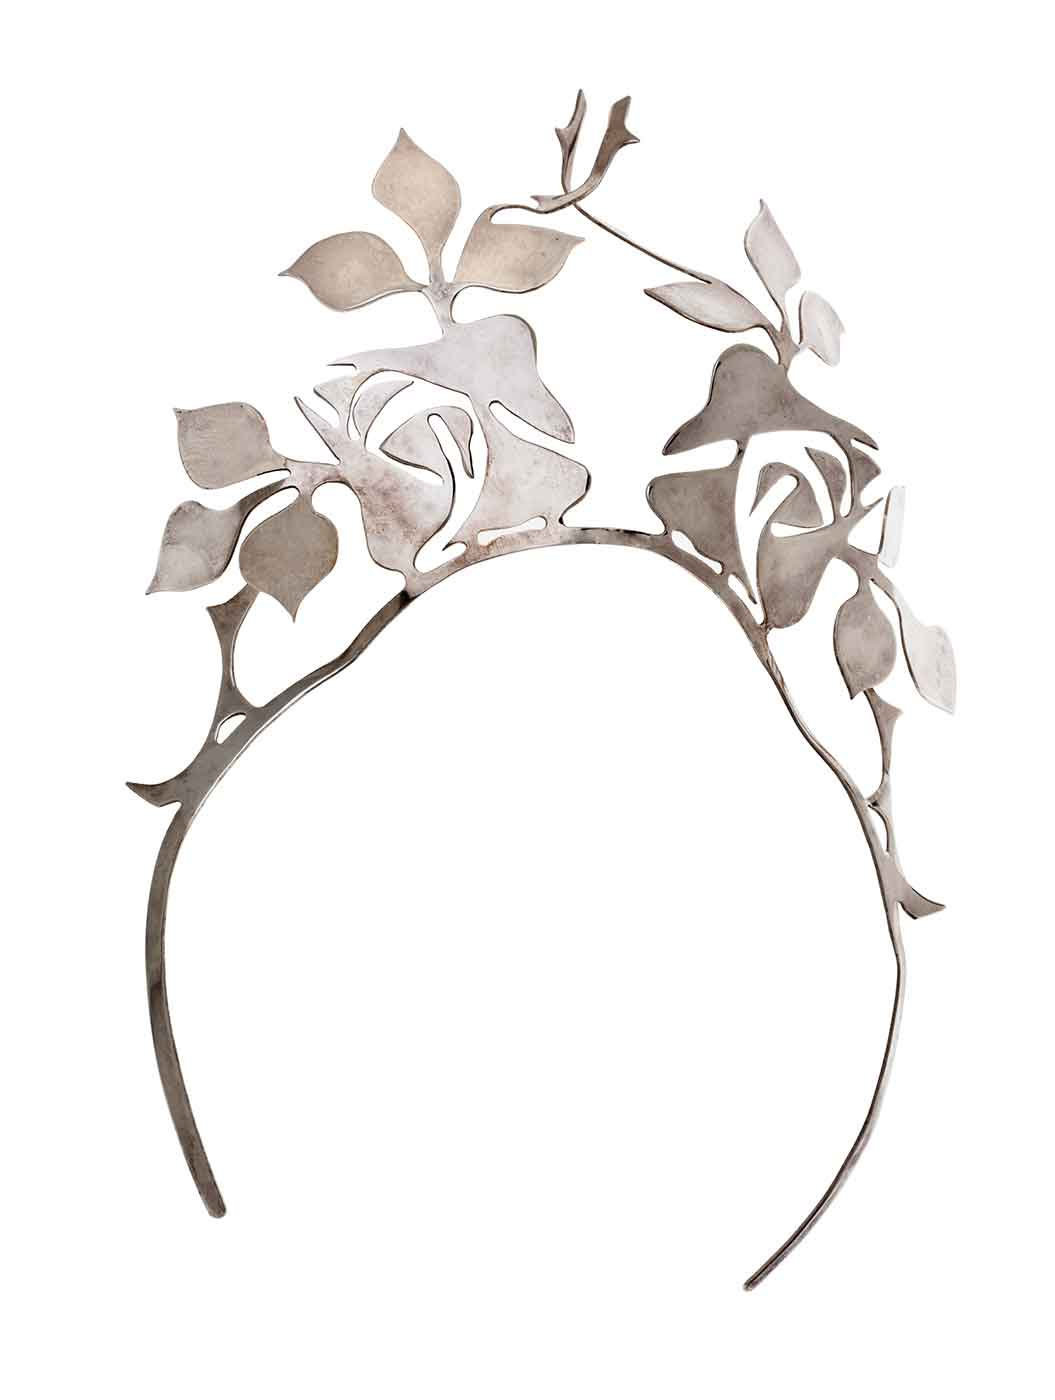 Silver tiara featuring ornate design of leaves.